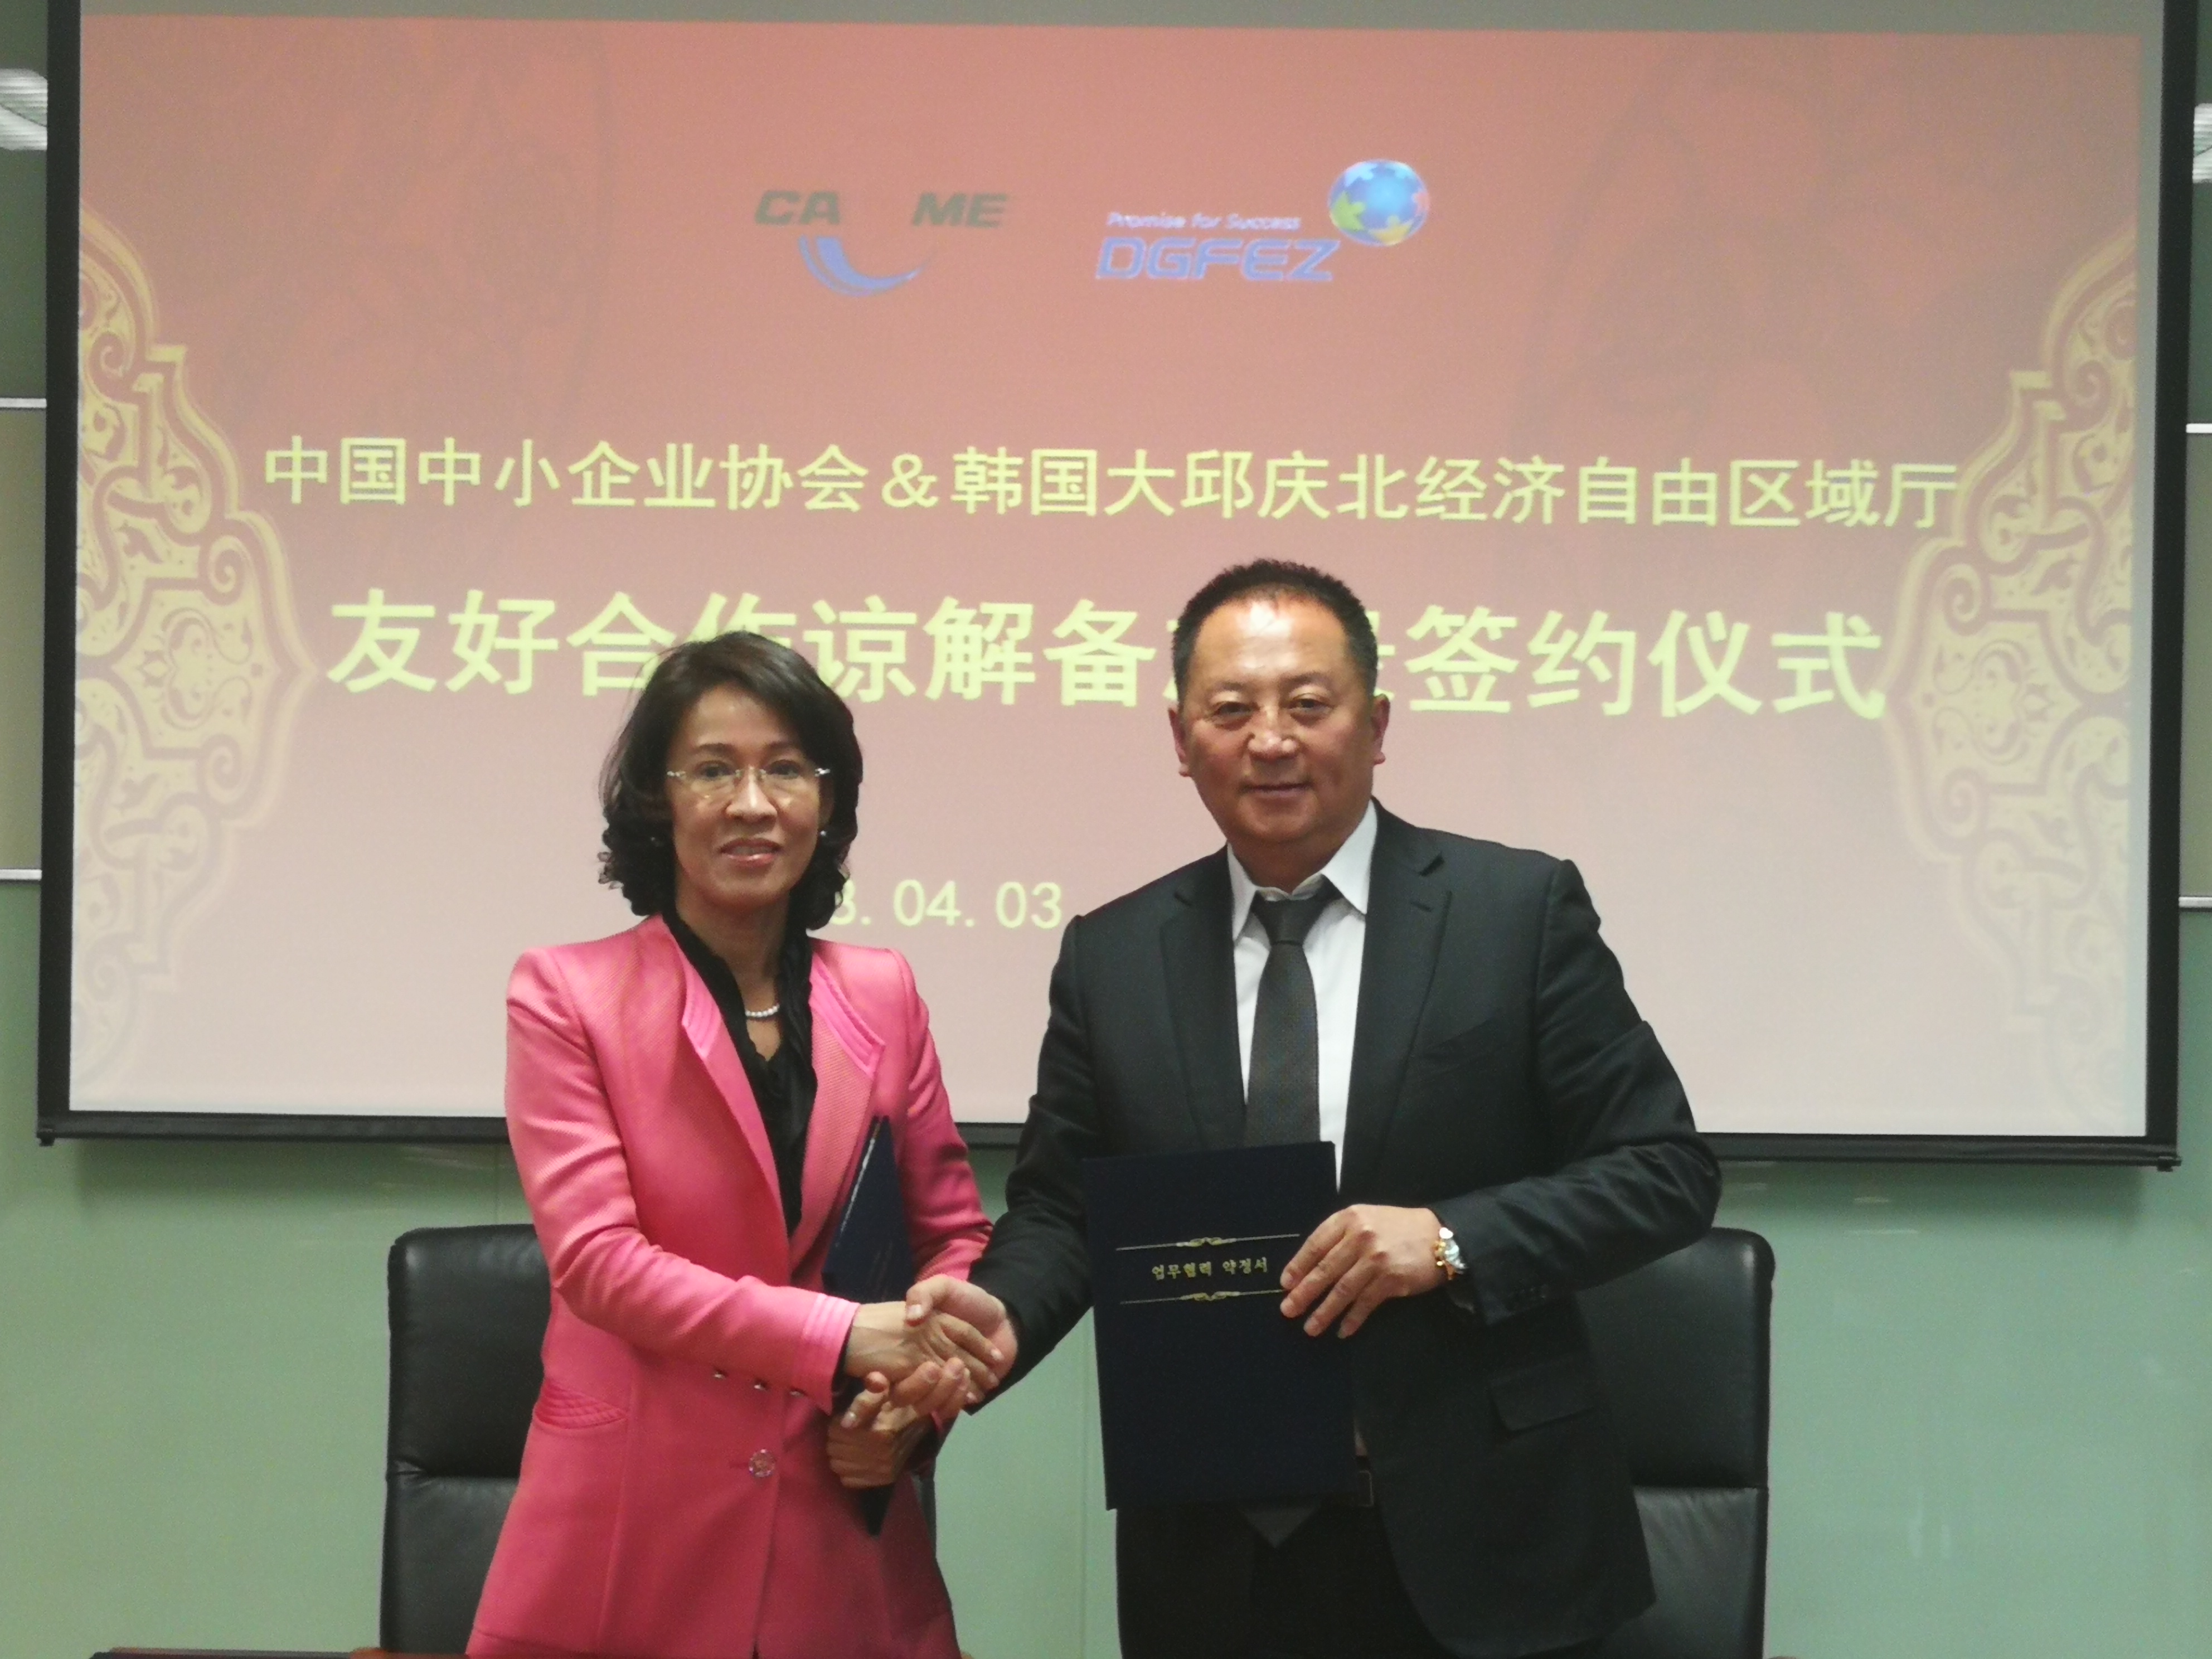 DGFEZ signed a MOU with China Small Business Association